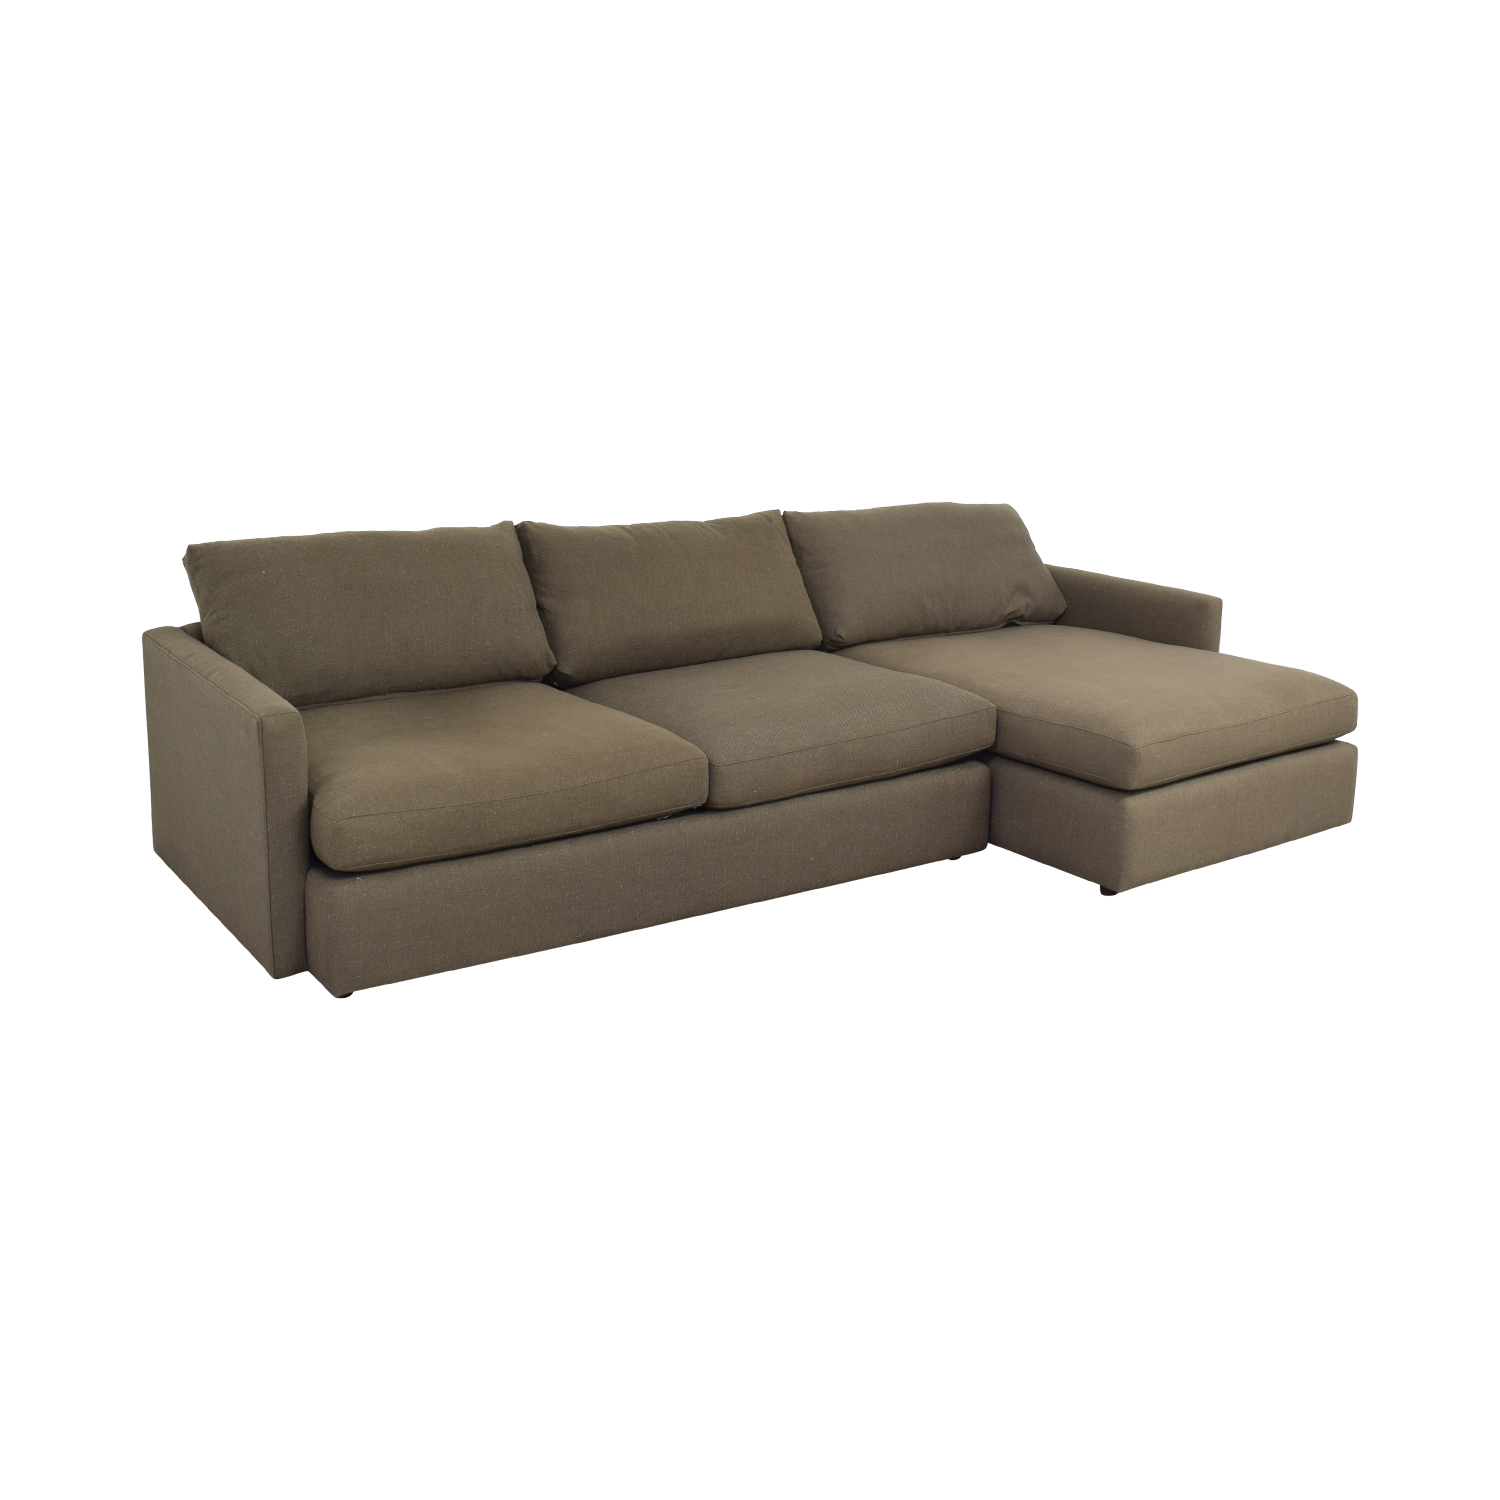 Crate & Barrel Crate & Barrel Two Piece Chaise Sectional Sofa second hand